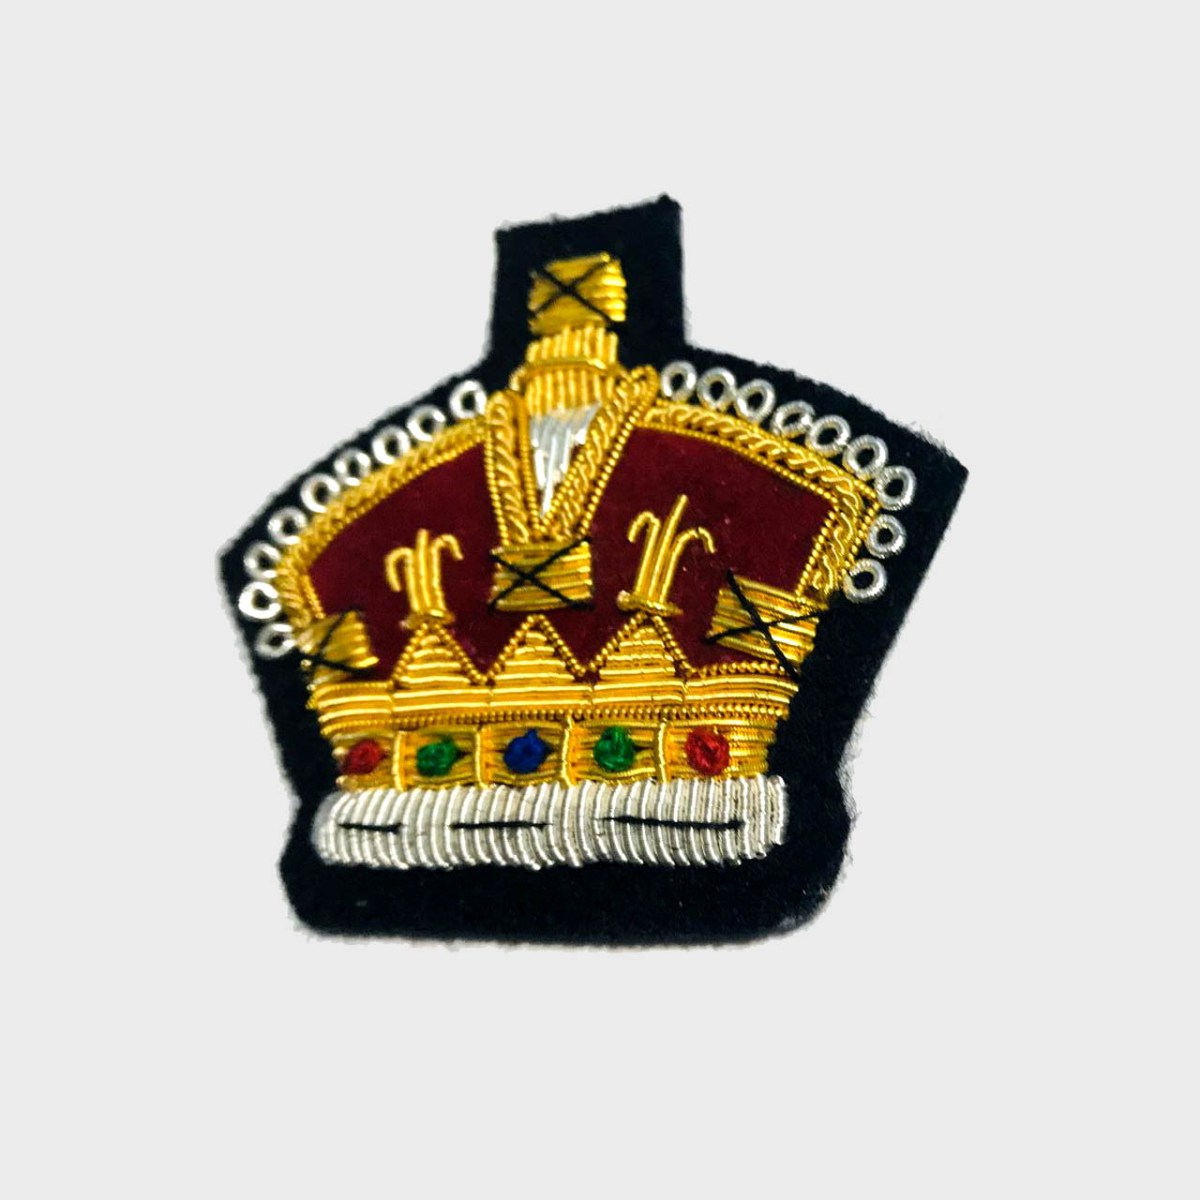 Royal Crown Bullion Embroidered Blazer Crest Patch - Fashionable 3D embroidered Royal Crown Crest Made by skilled artisans Bullion wire hand Stitched on Black colour Felt Size is approx 2x2 inches sew-on backing only 8